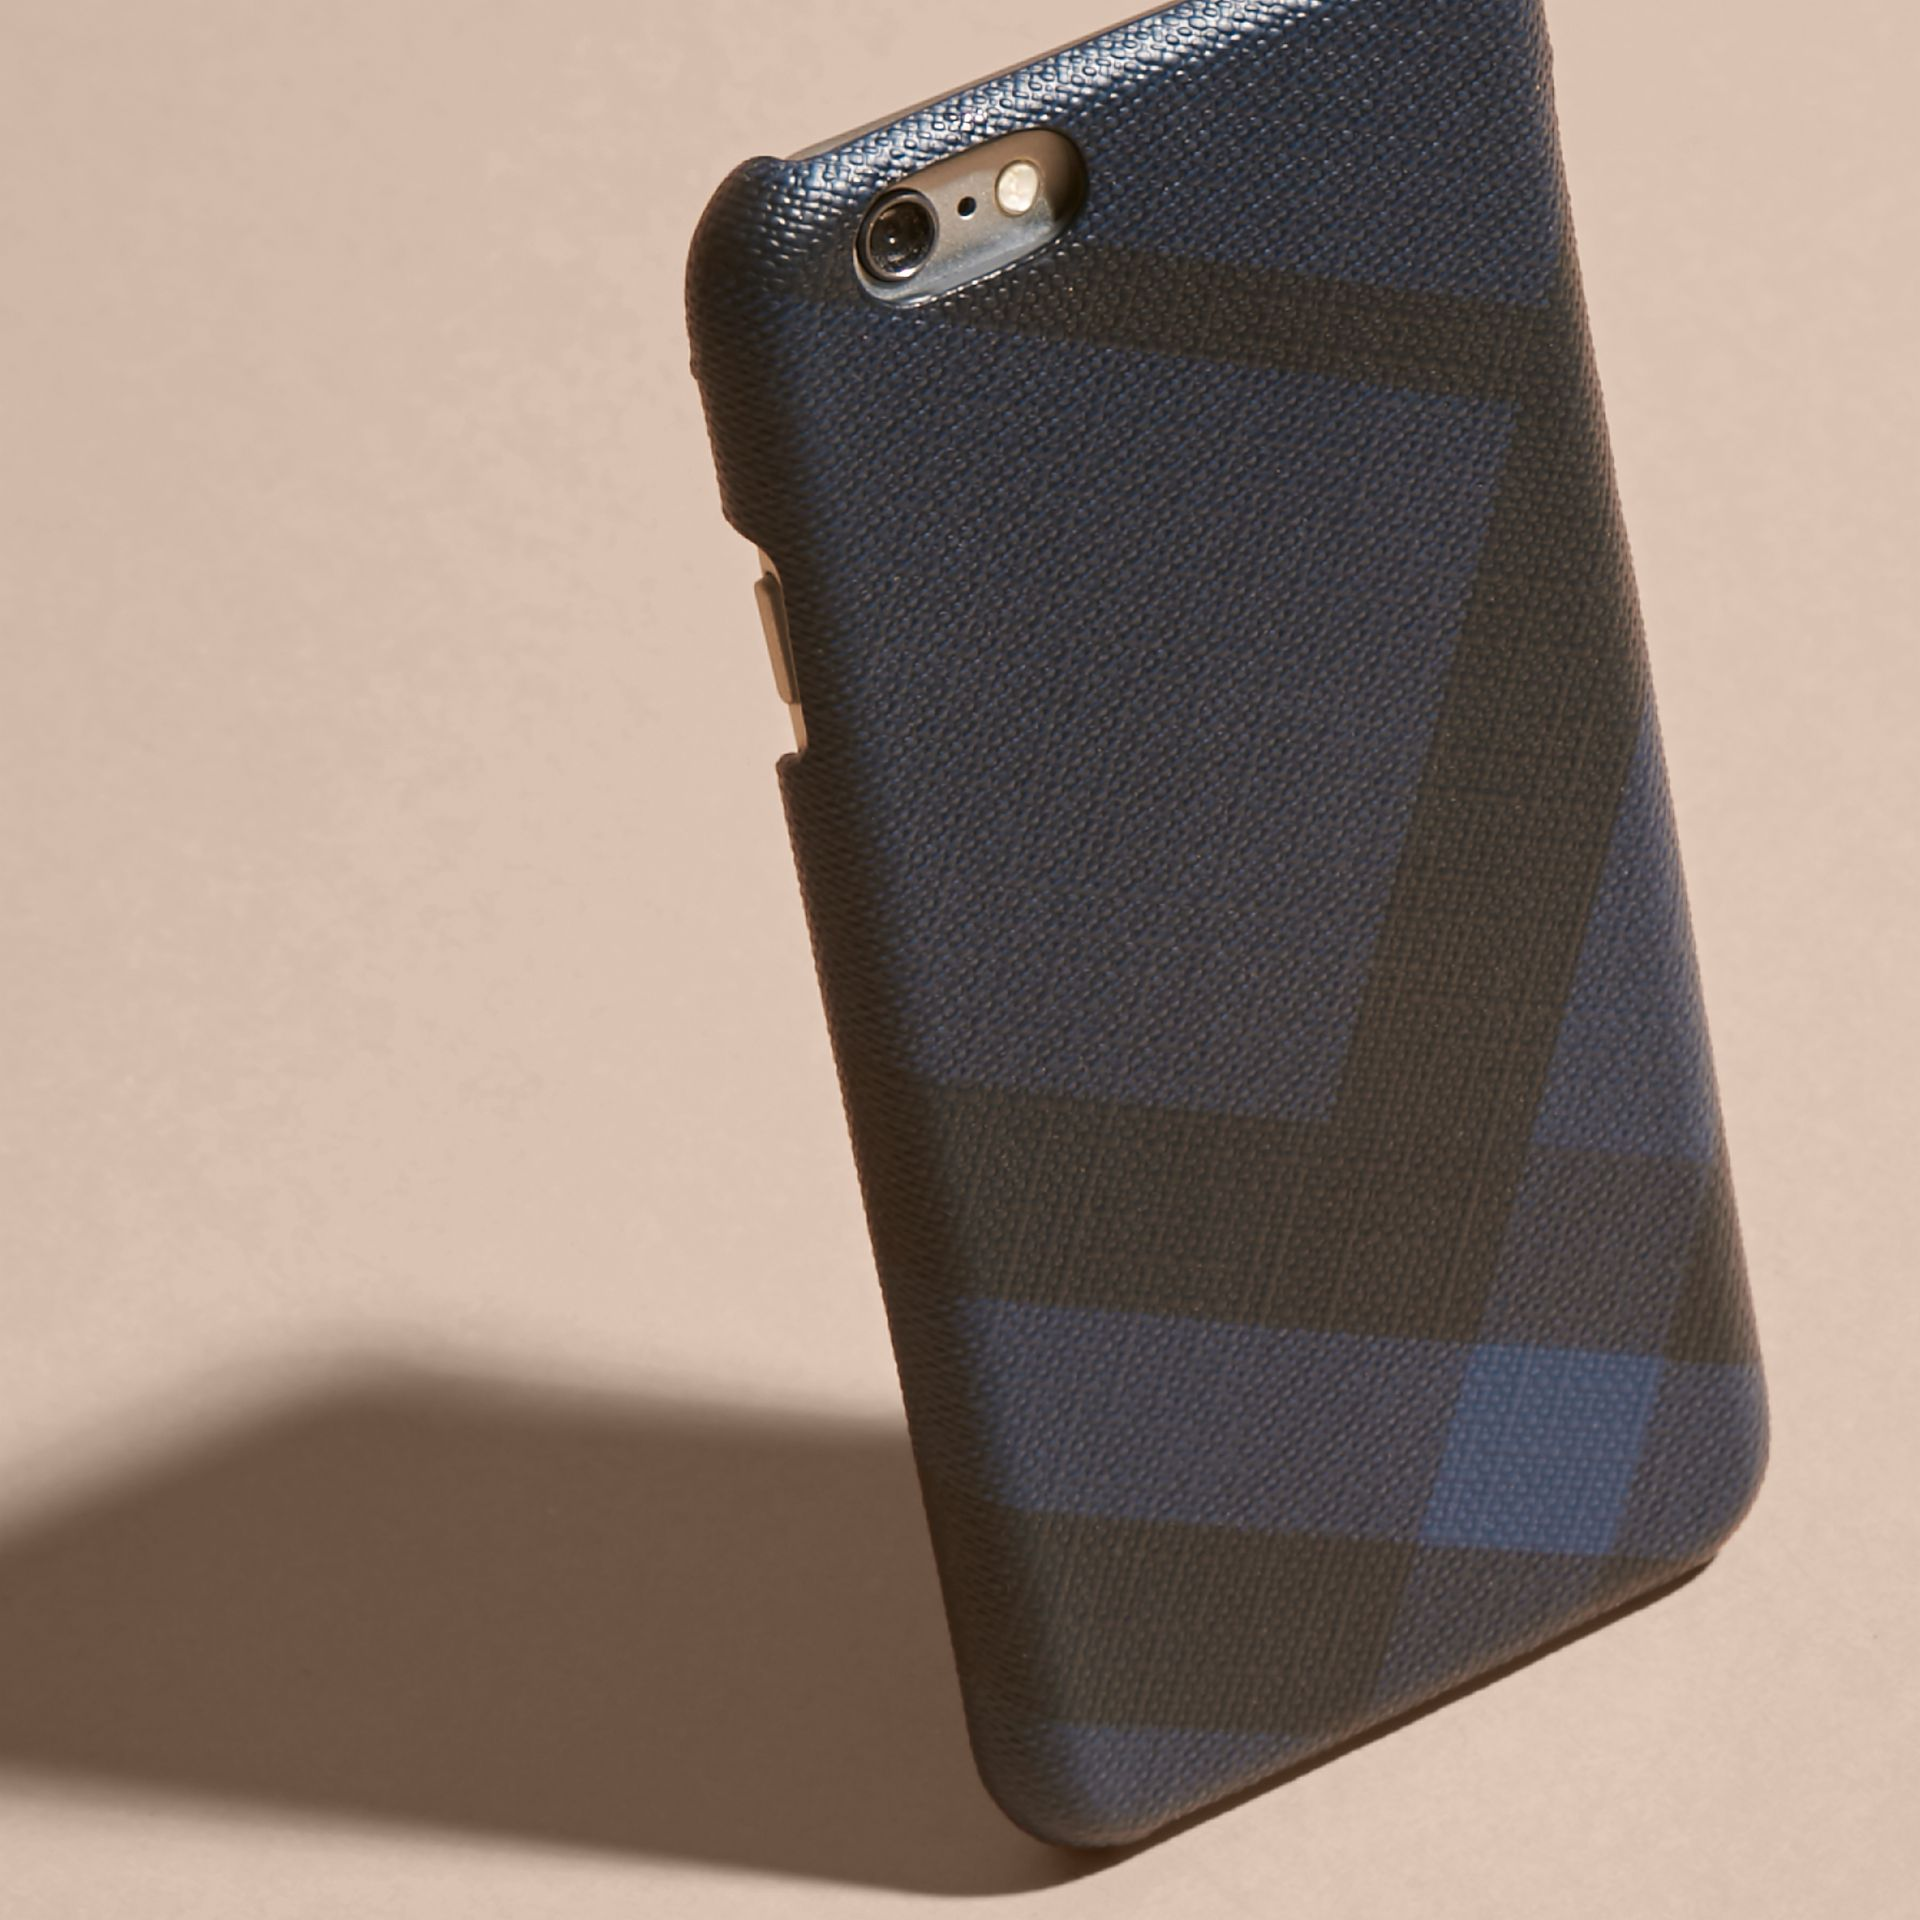 iPhone 7-Etui in London Check (Marineblau/schwarz) - Damen | Burberry - Galerie-Bild 4